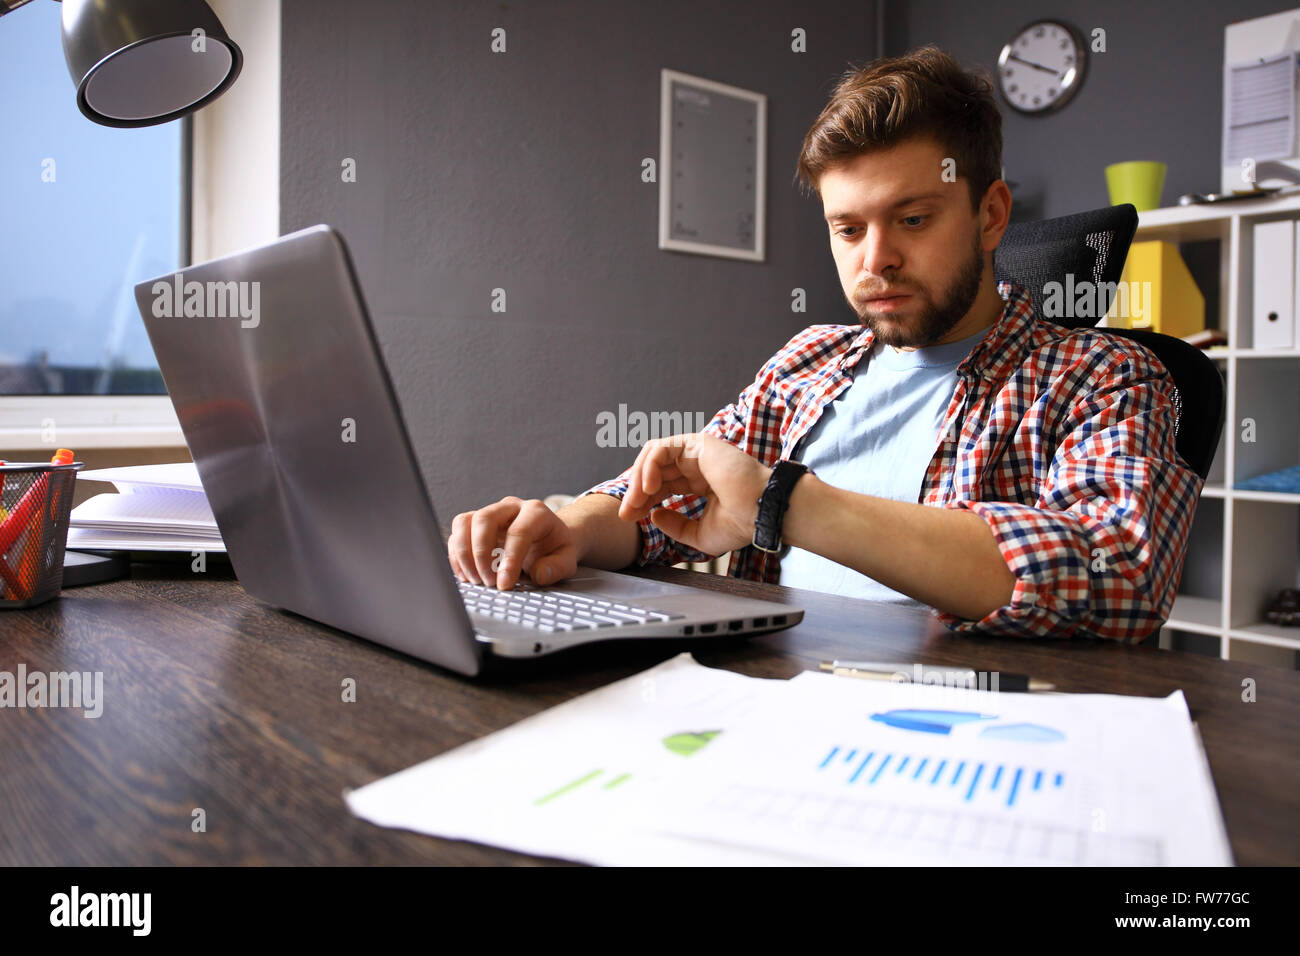 Business and time management concept. Stressed business man looking at wrist watch. Human emotion - Stock Image